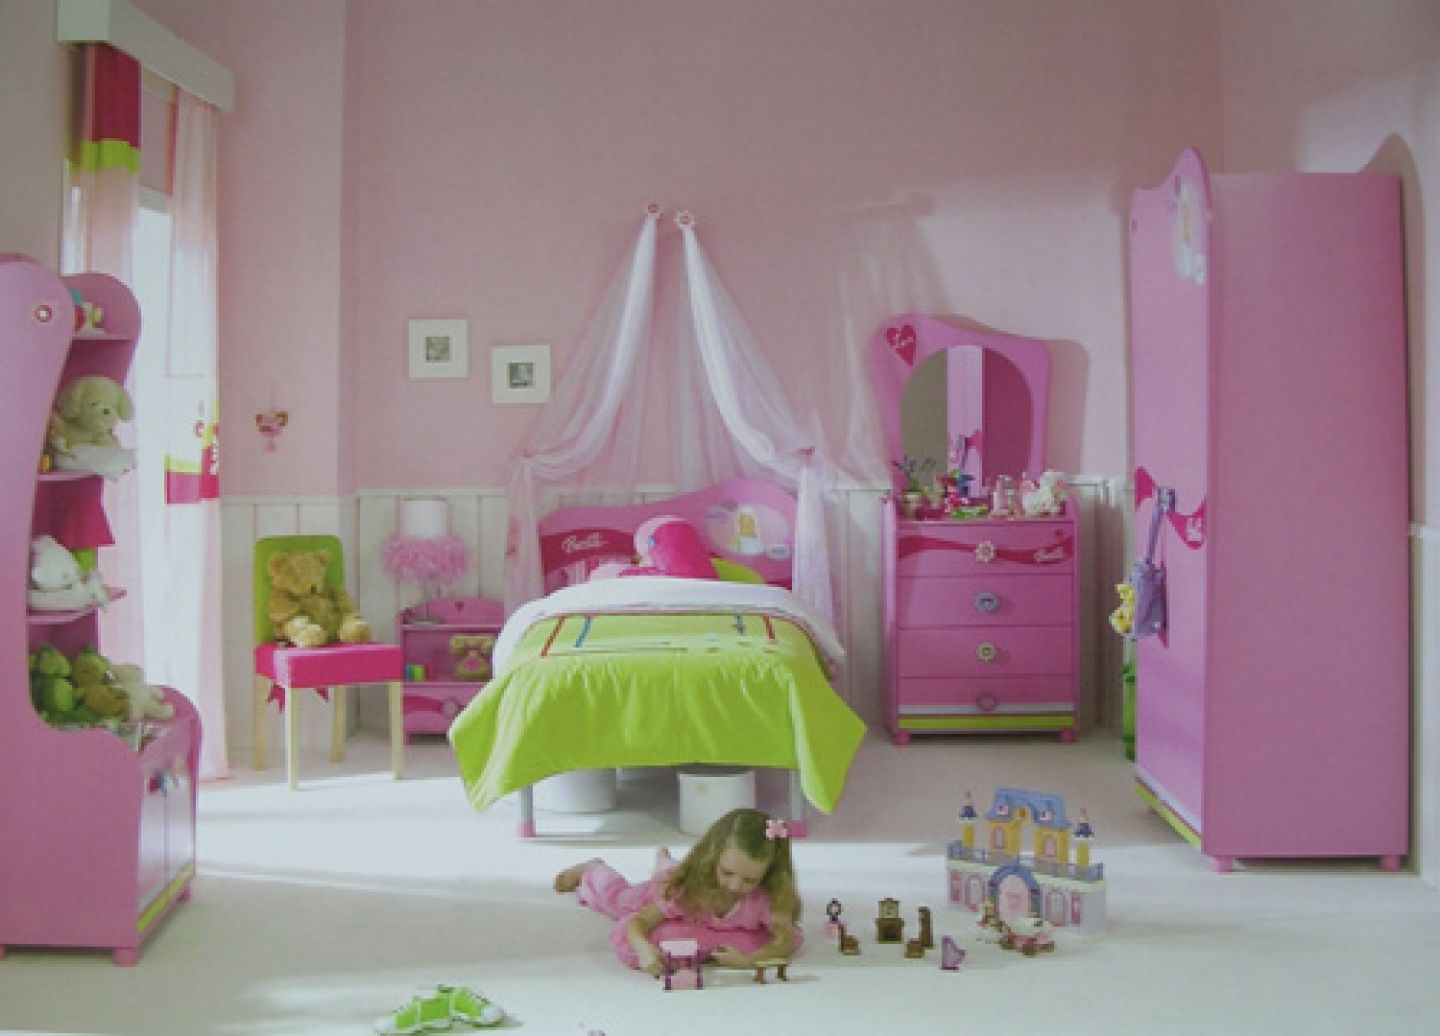 Bedroom decor ideas for girls - Kids Bedroom Ideas Kids Bedroom Pinky Decoration Inspiration Girls Bedroom Sets Decorating Ideas For Little